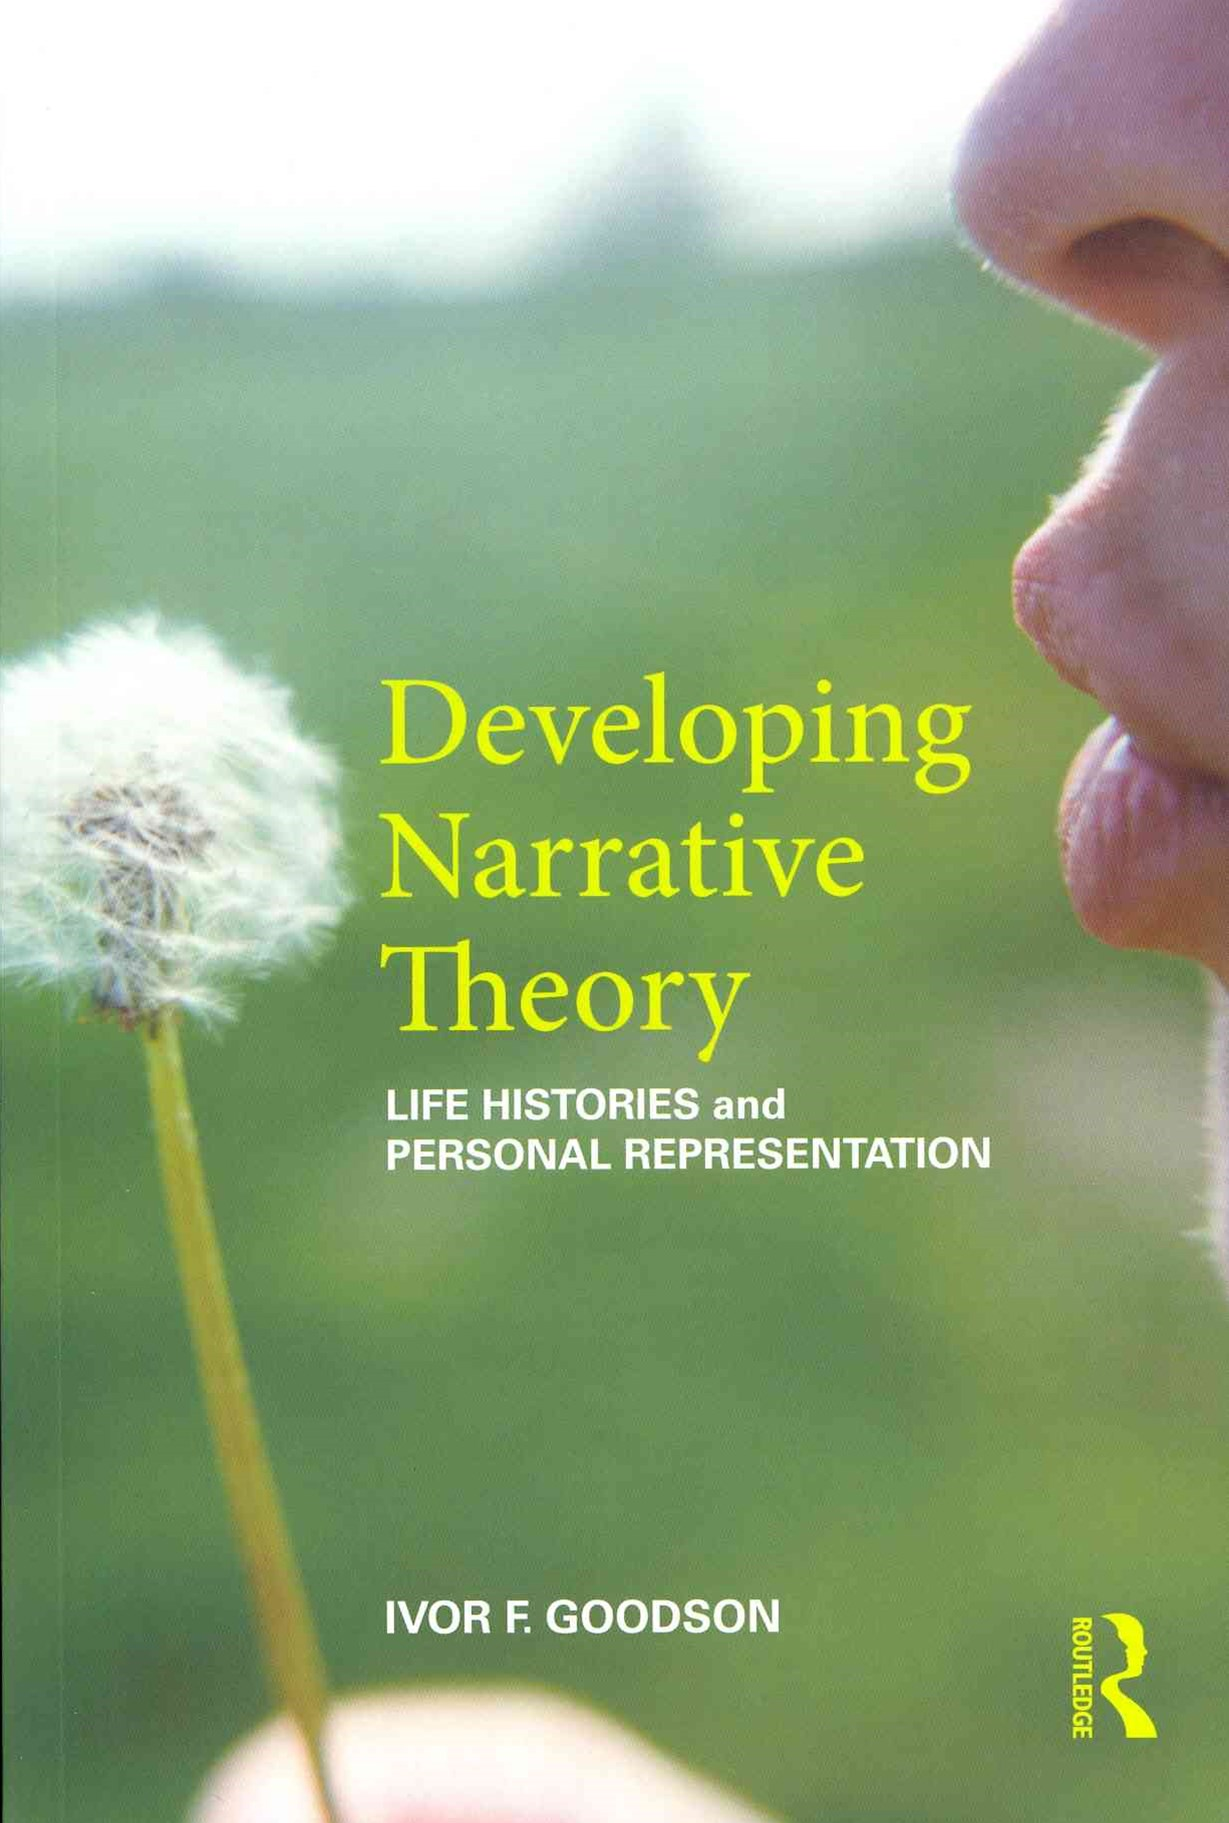 Developing Narrative Theory